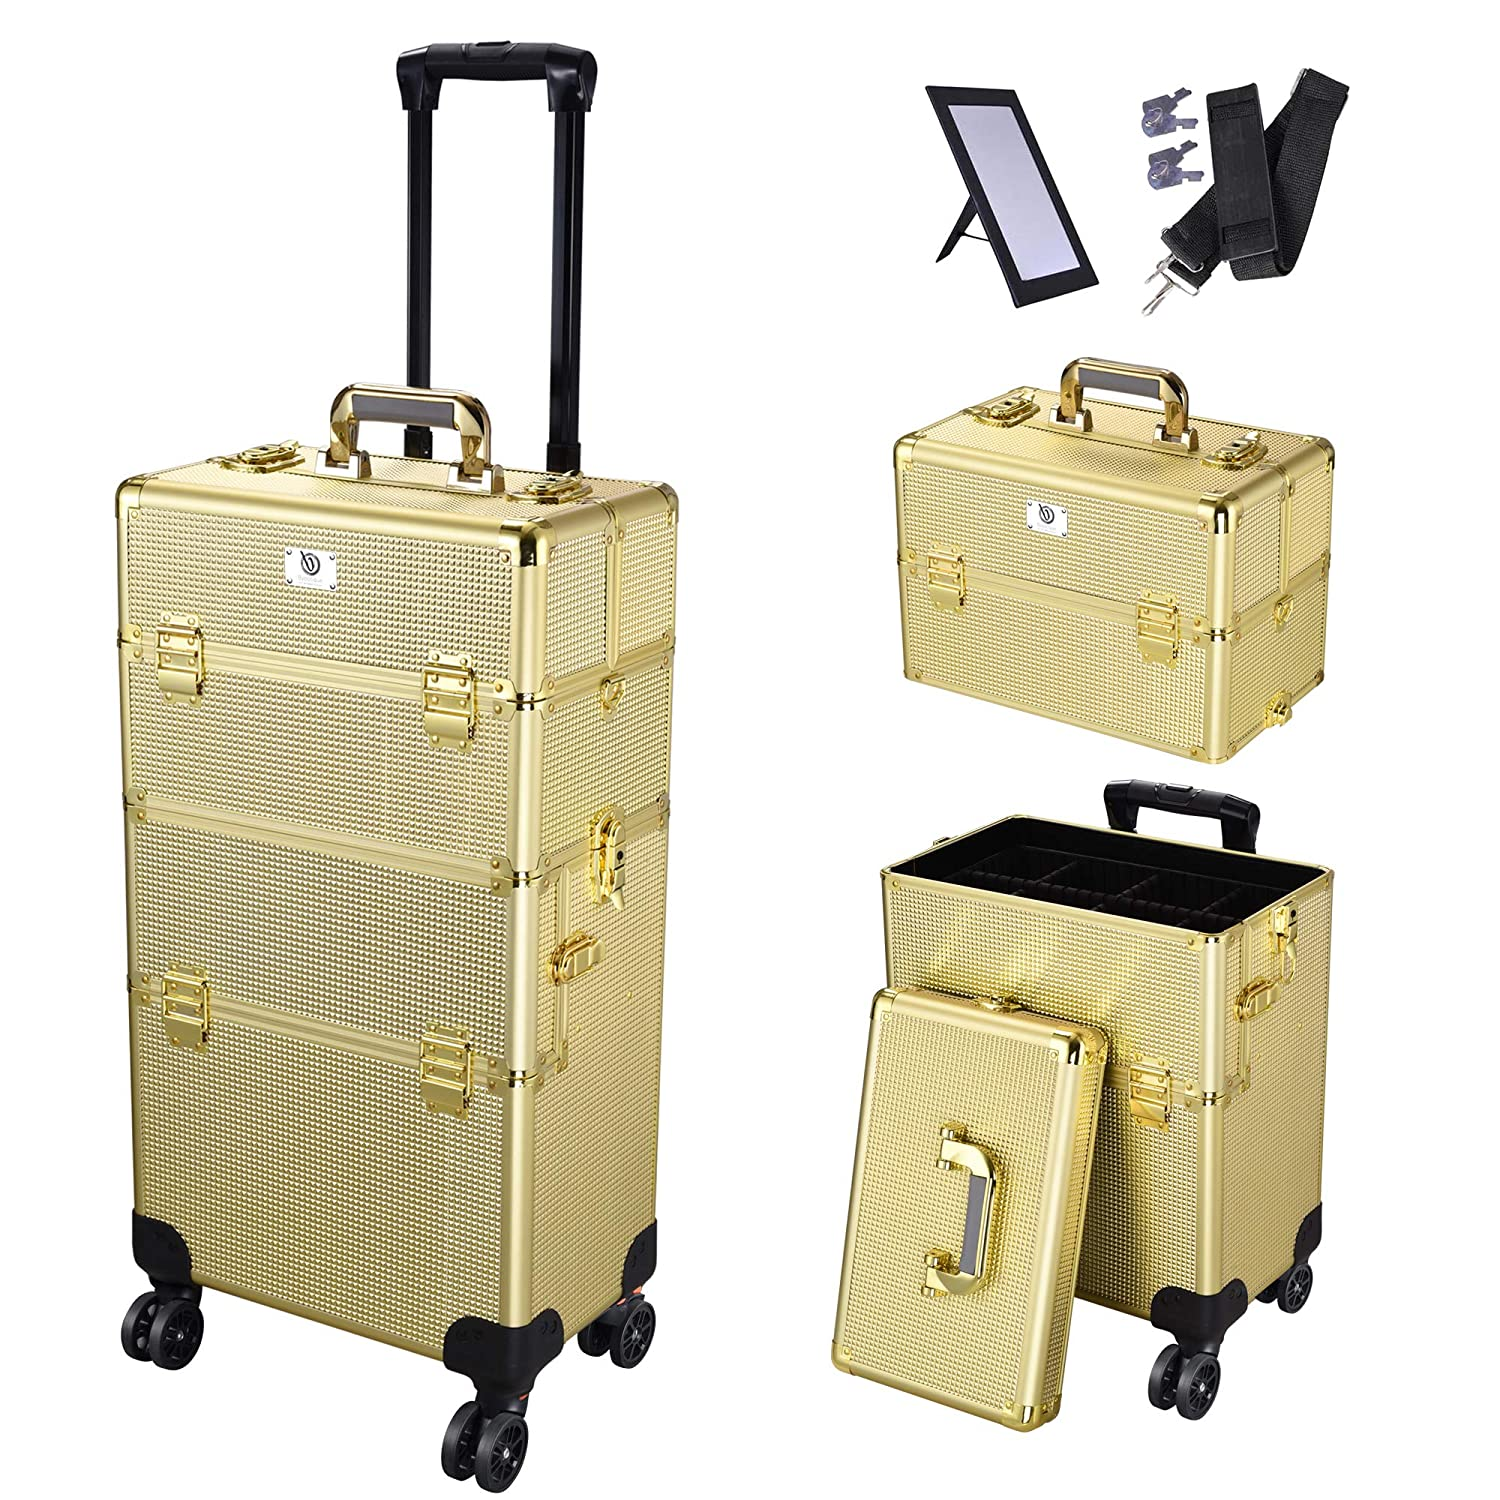 Byootique Ranking TOP13 Shiny Gold Super Special SALE held 2in1 Rolling Makeup Loc Train Aluminum Case